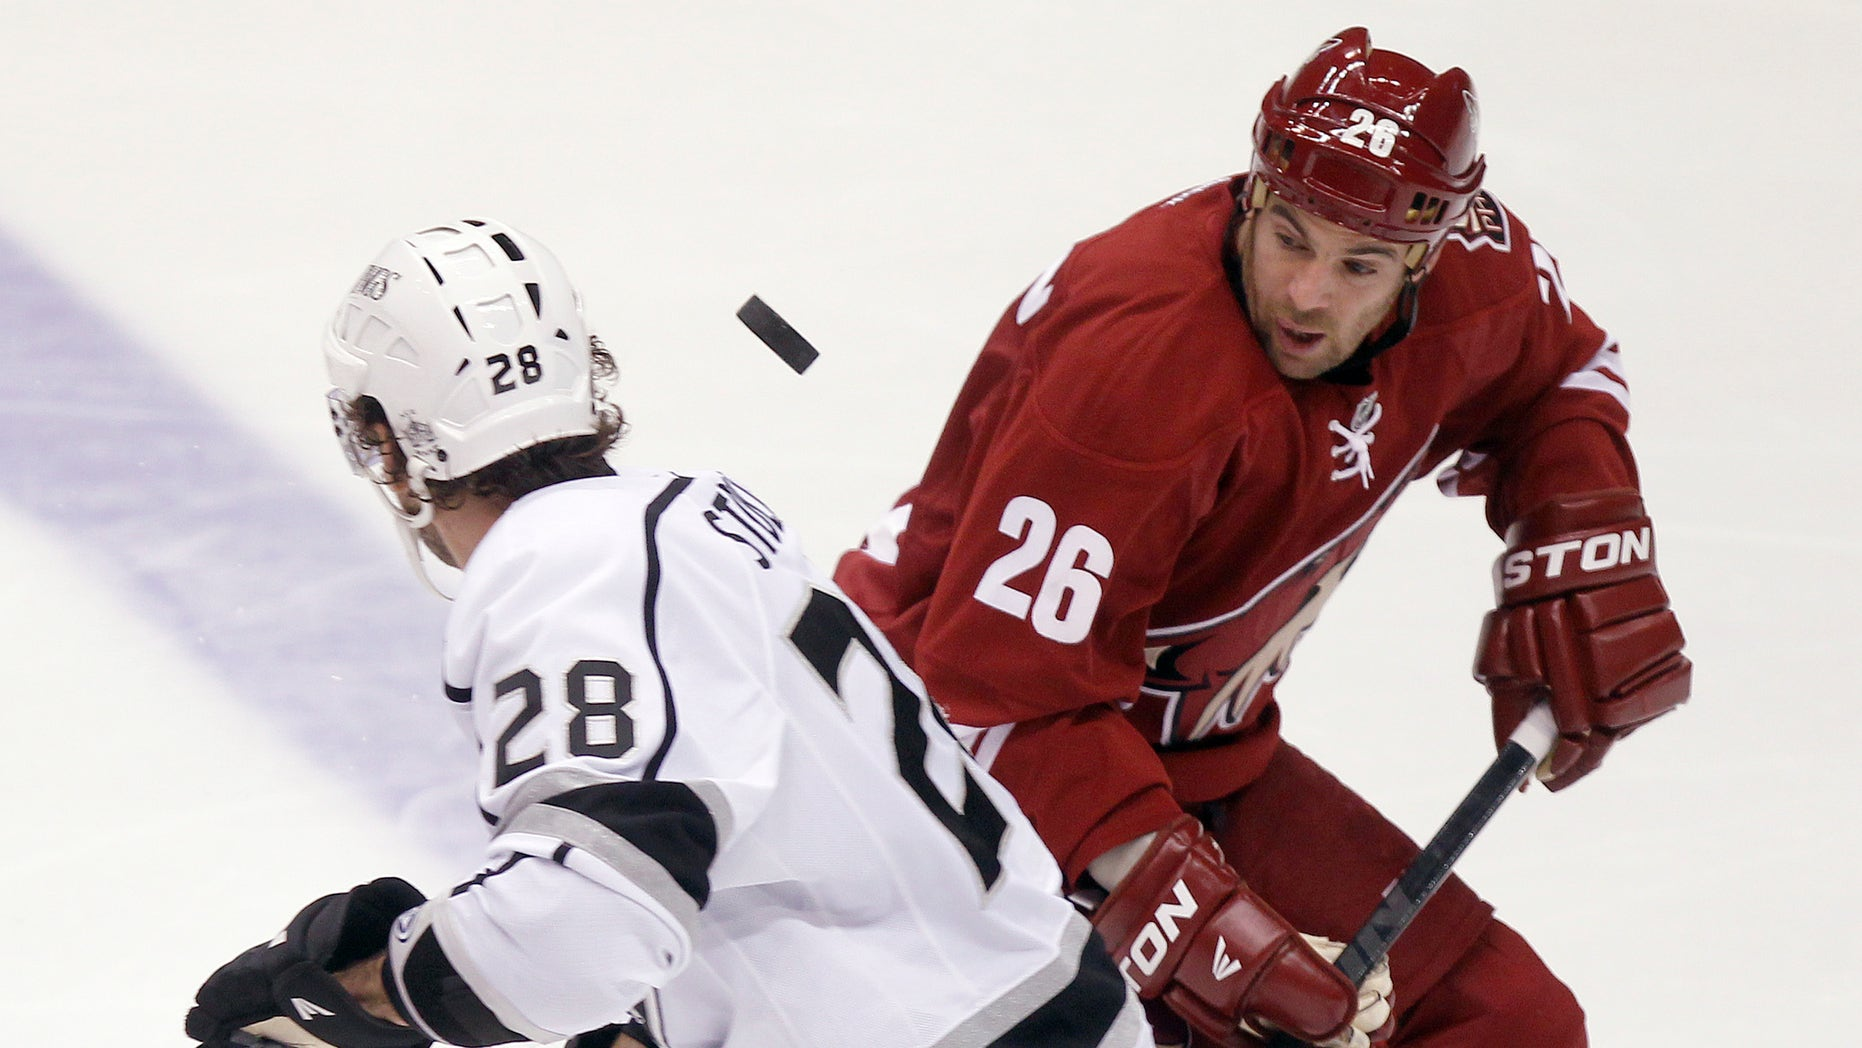 Los Angeles Kings center Jarret Stoll, left, and Phoenix Coyotes left winger Steve Sullivan, right, looks to gain control of a loose puck in the third period of an NHL hockey game Tuesday, April 2, 2013, in Glendale, Ariz. The Coyotes won 3-1. (AP Photo/Paul Connors)